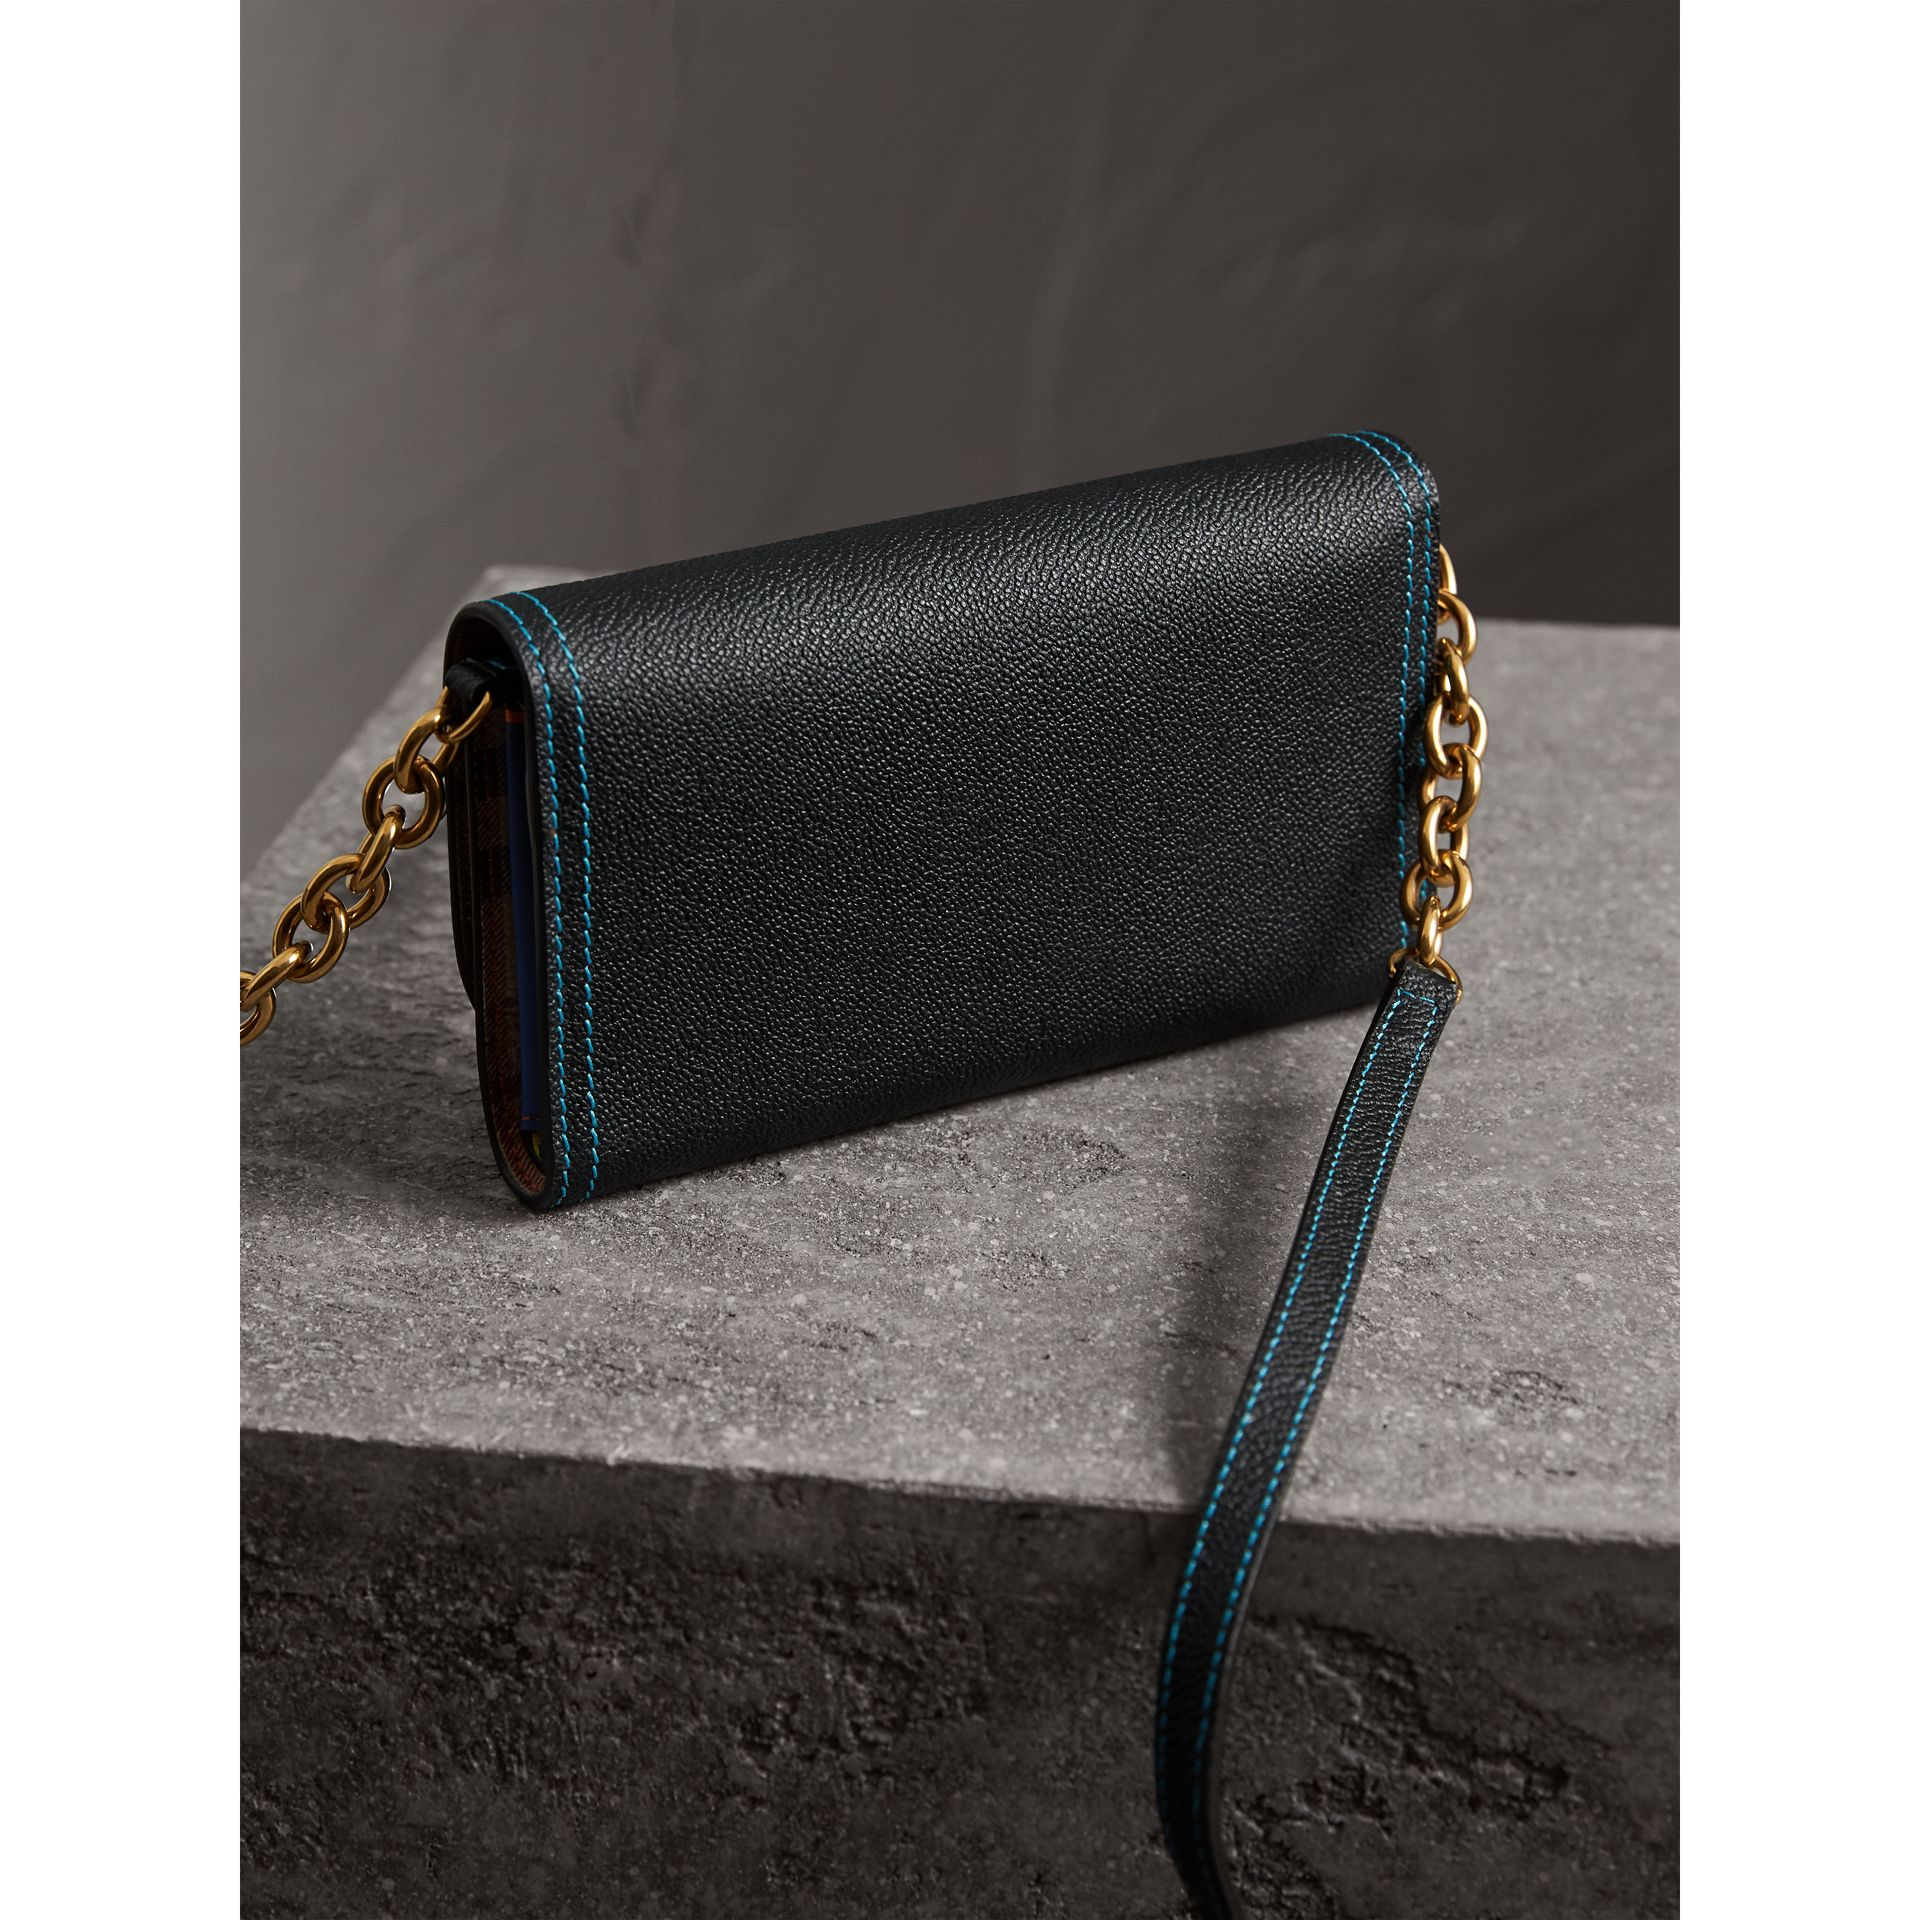 Topstitch Detail Leather Wallet with Detachable Strap in Black/multicolour - Women | Burberry United Kingdom - gallery image 4